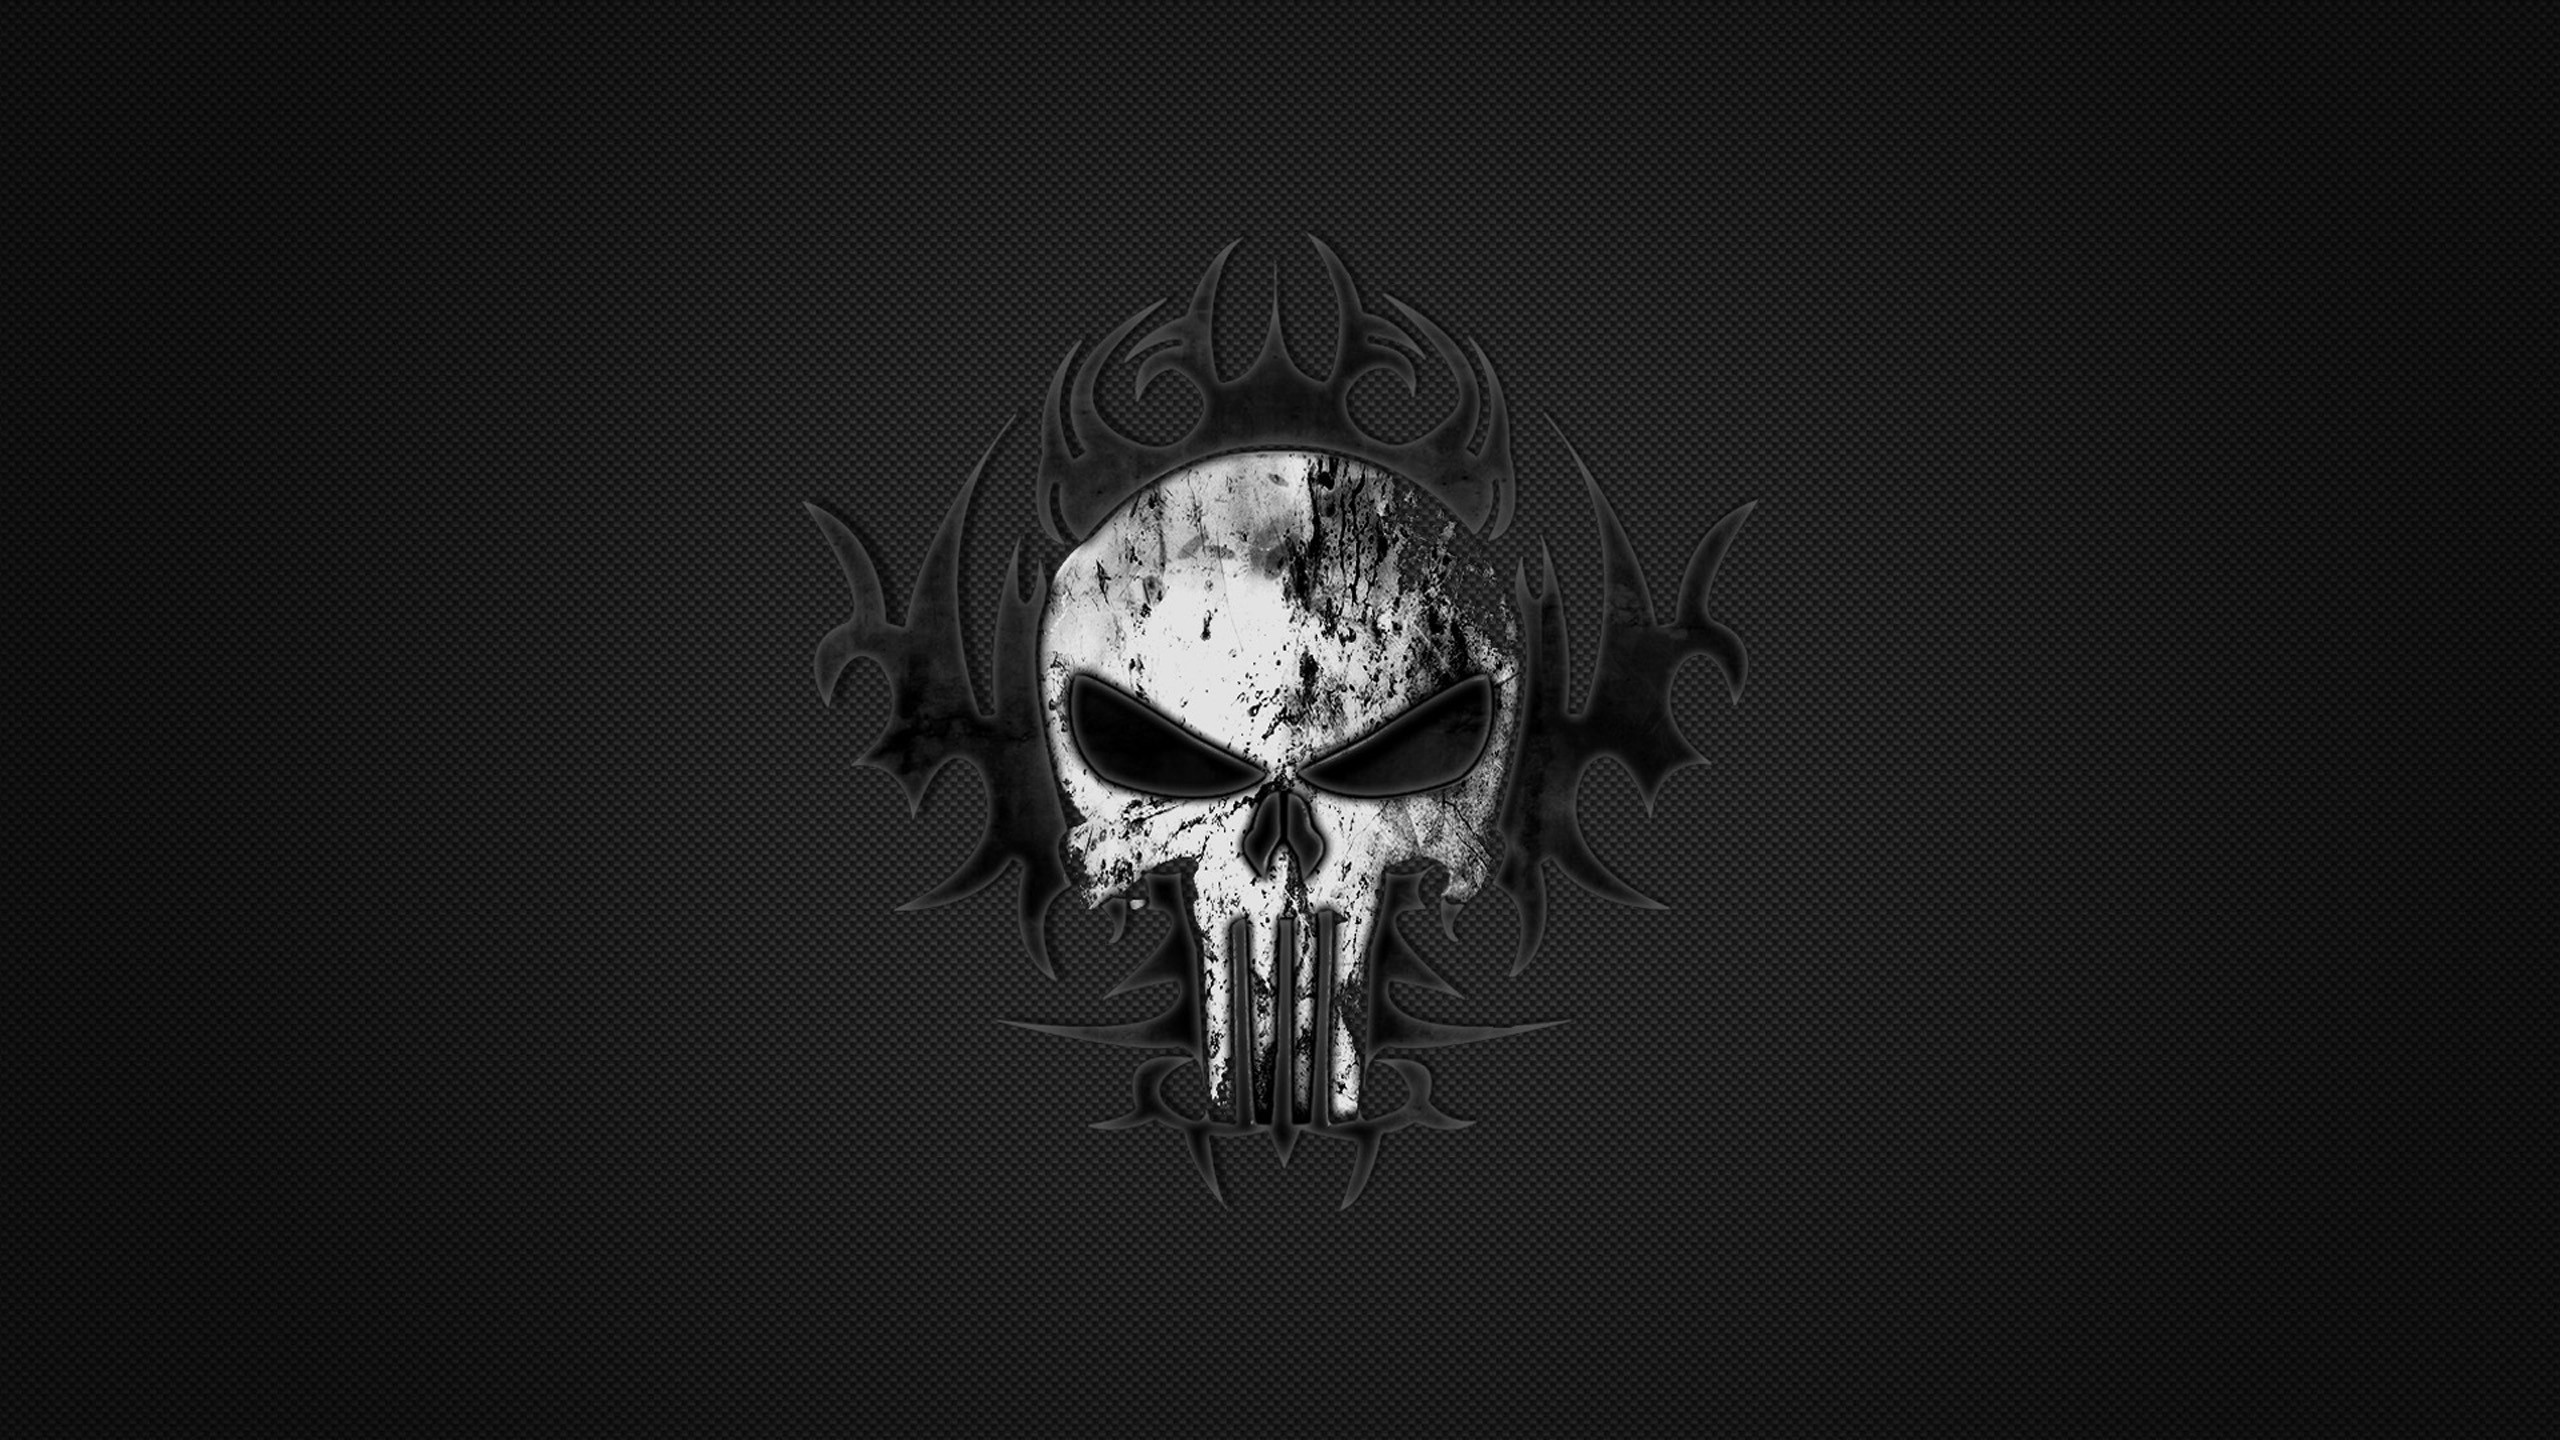 Awesome Skull Wallpapers Wallpapers Browse: Skull Wallpaper 3D ·① WallpaperTag